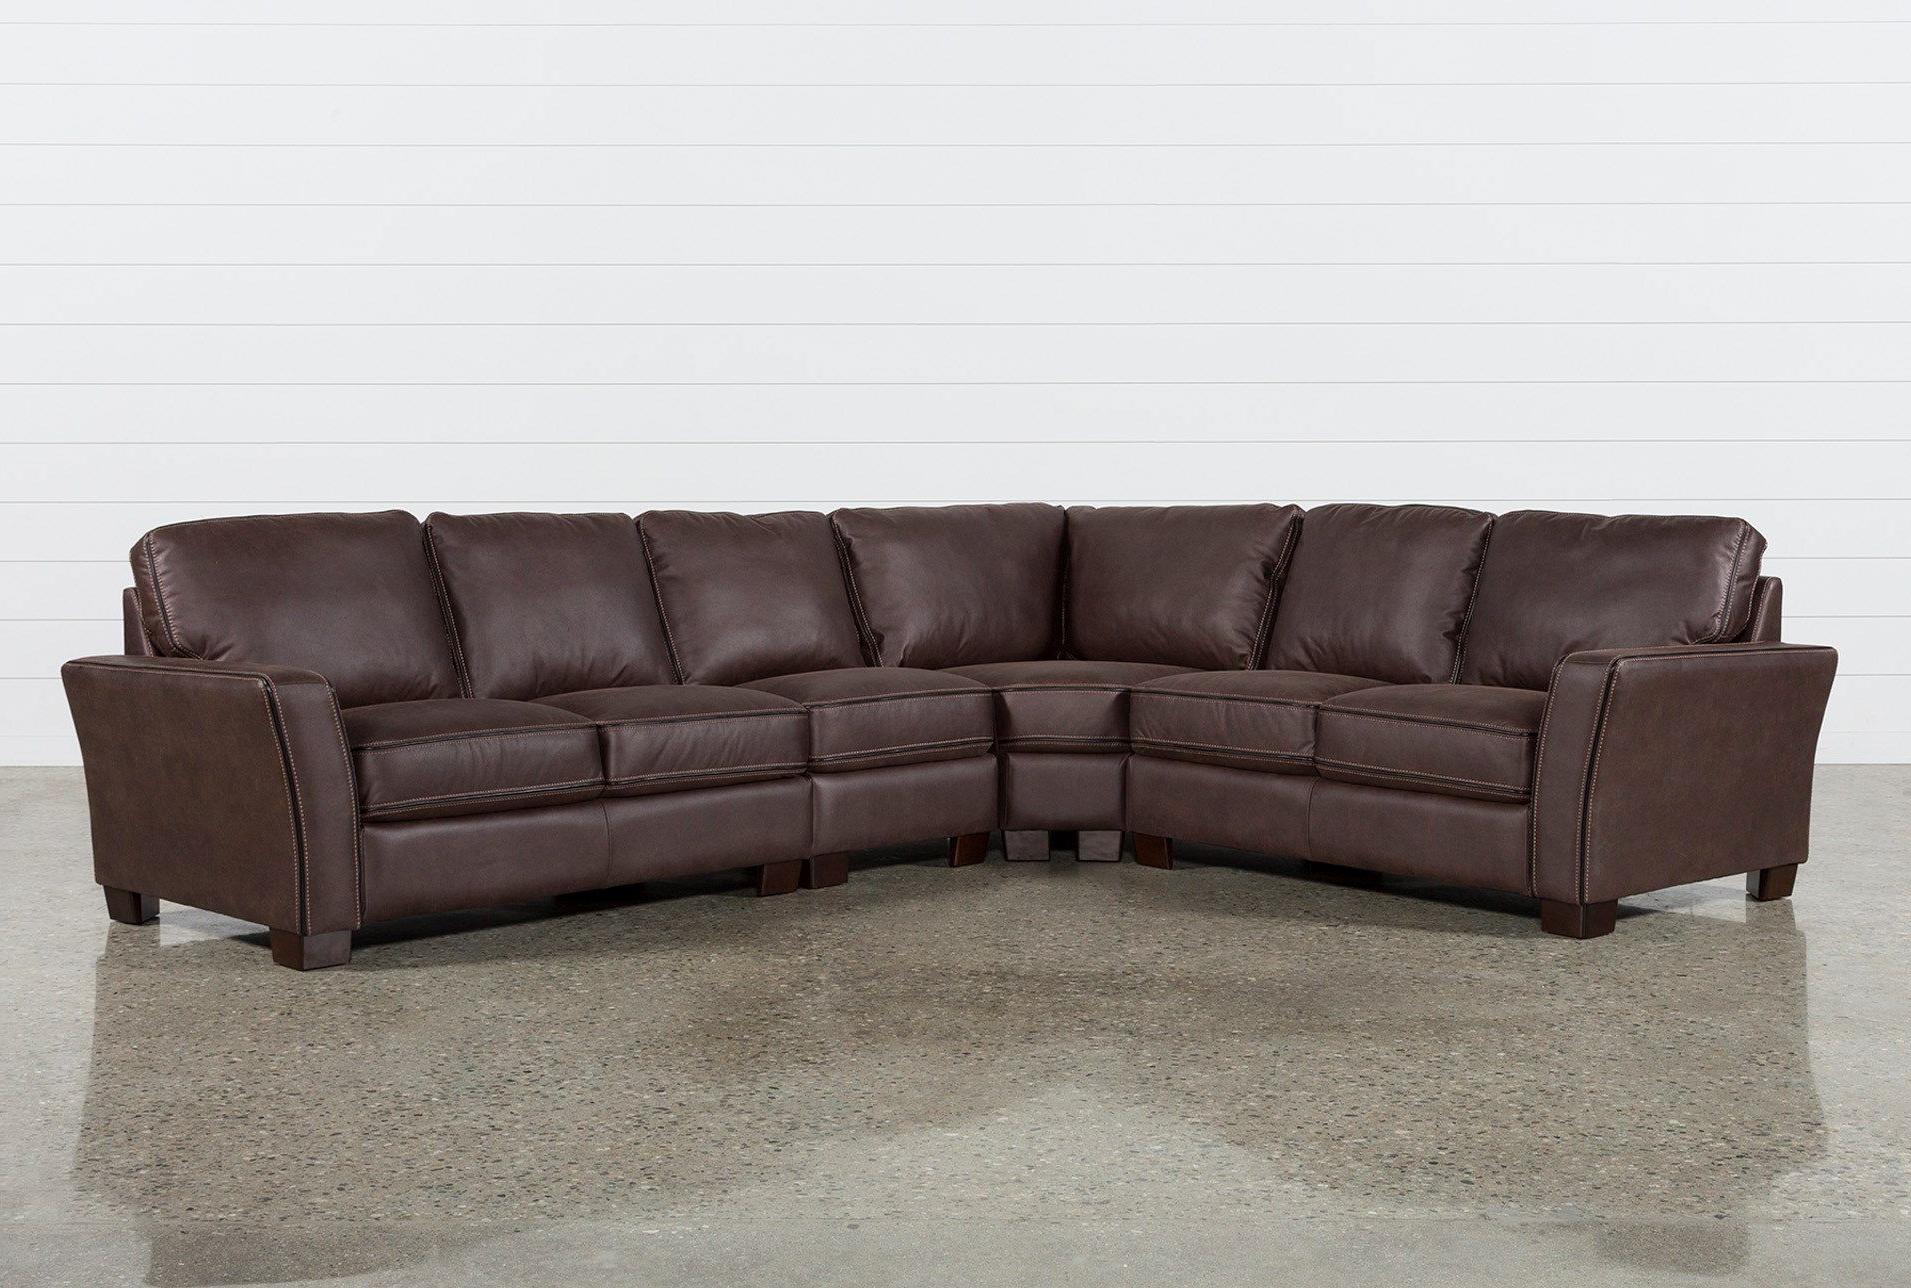 Preferred Burton Leather 3 Piece Sectionals Intended For Blaine 4 Piece Sectional In (View 2 of 20)